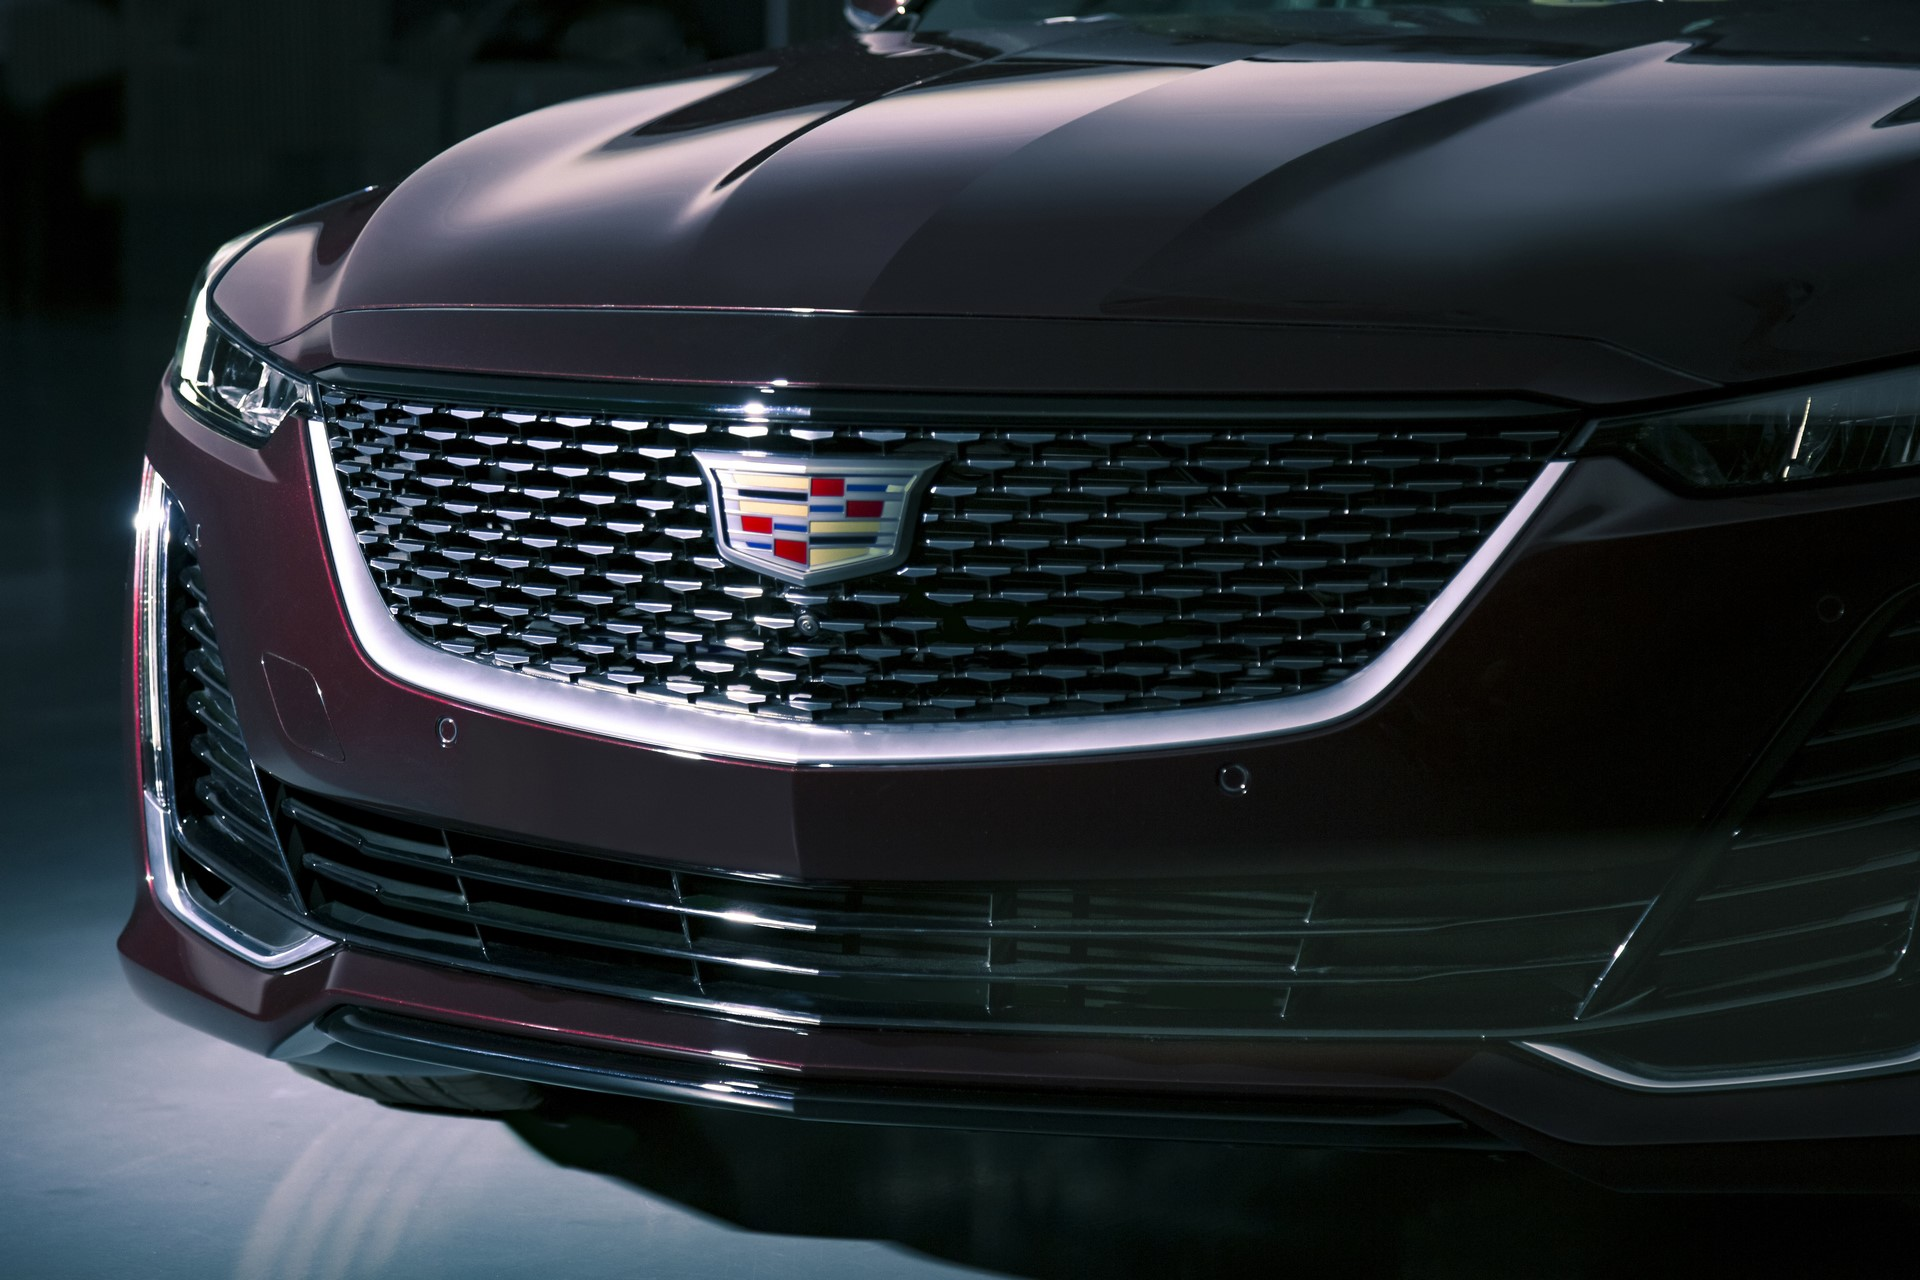 The CT5 Premium Luxury showcases Cadillac's unique expertise in crafting American performance sedans, with details designed to elevate every drive.